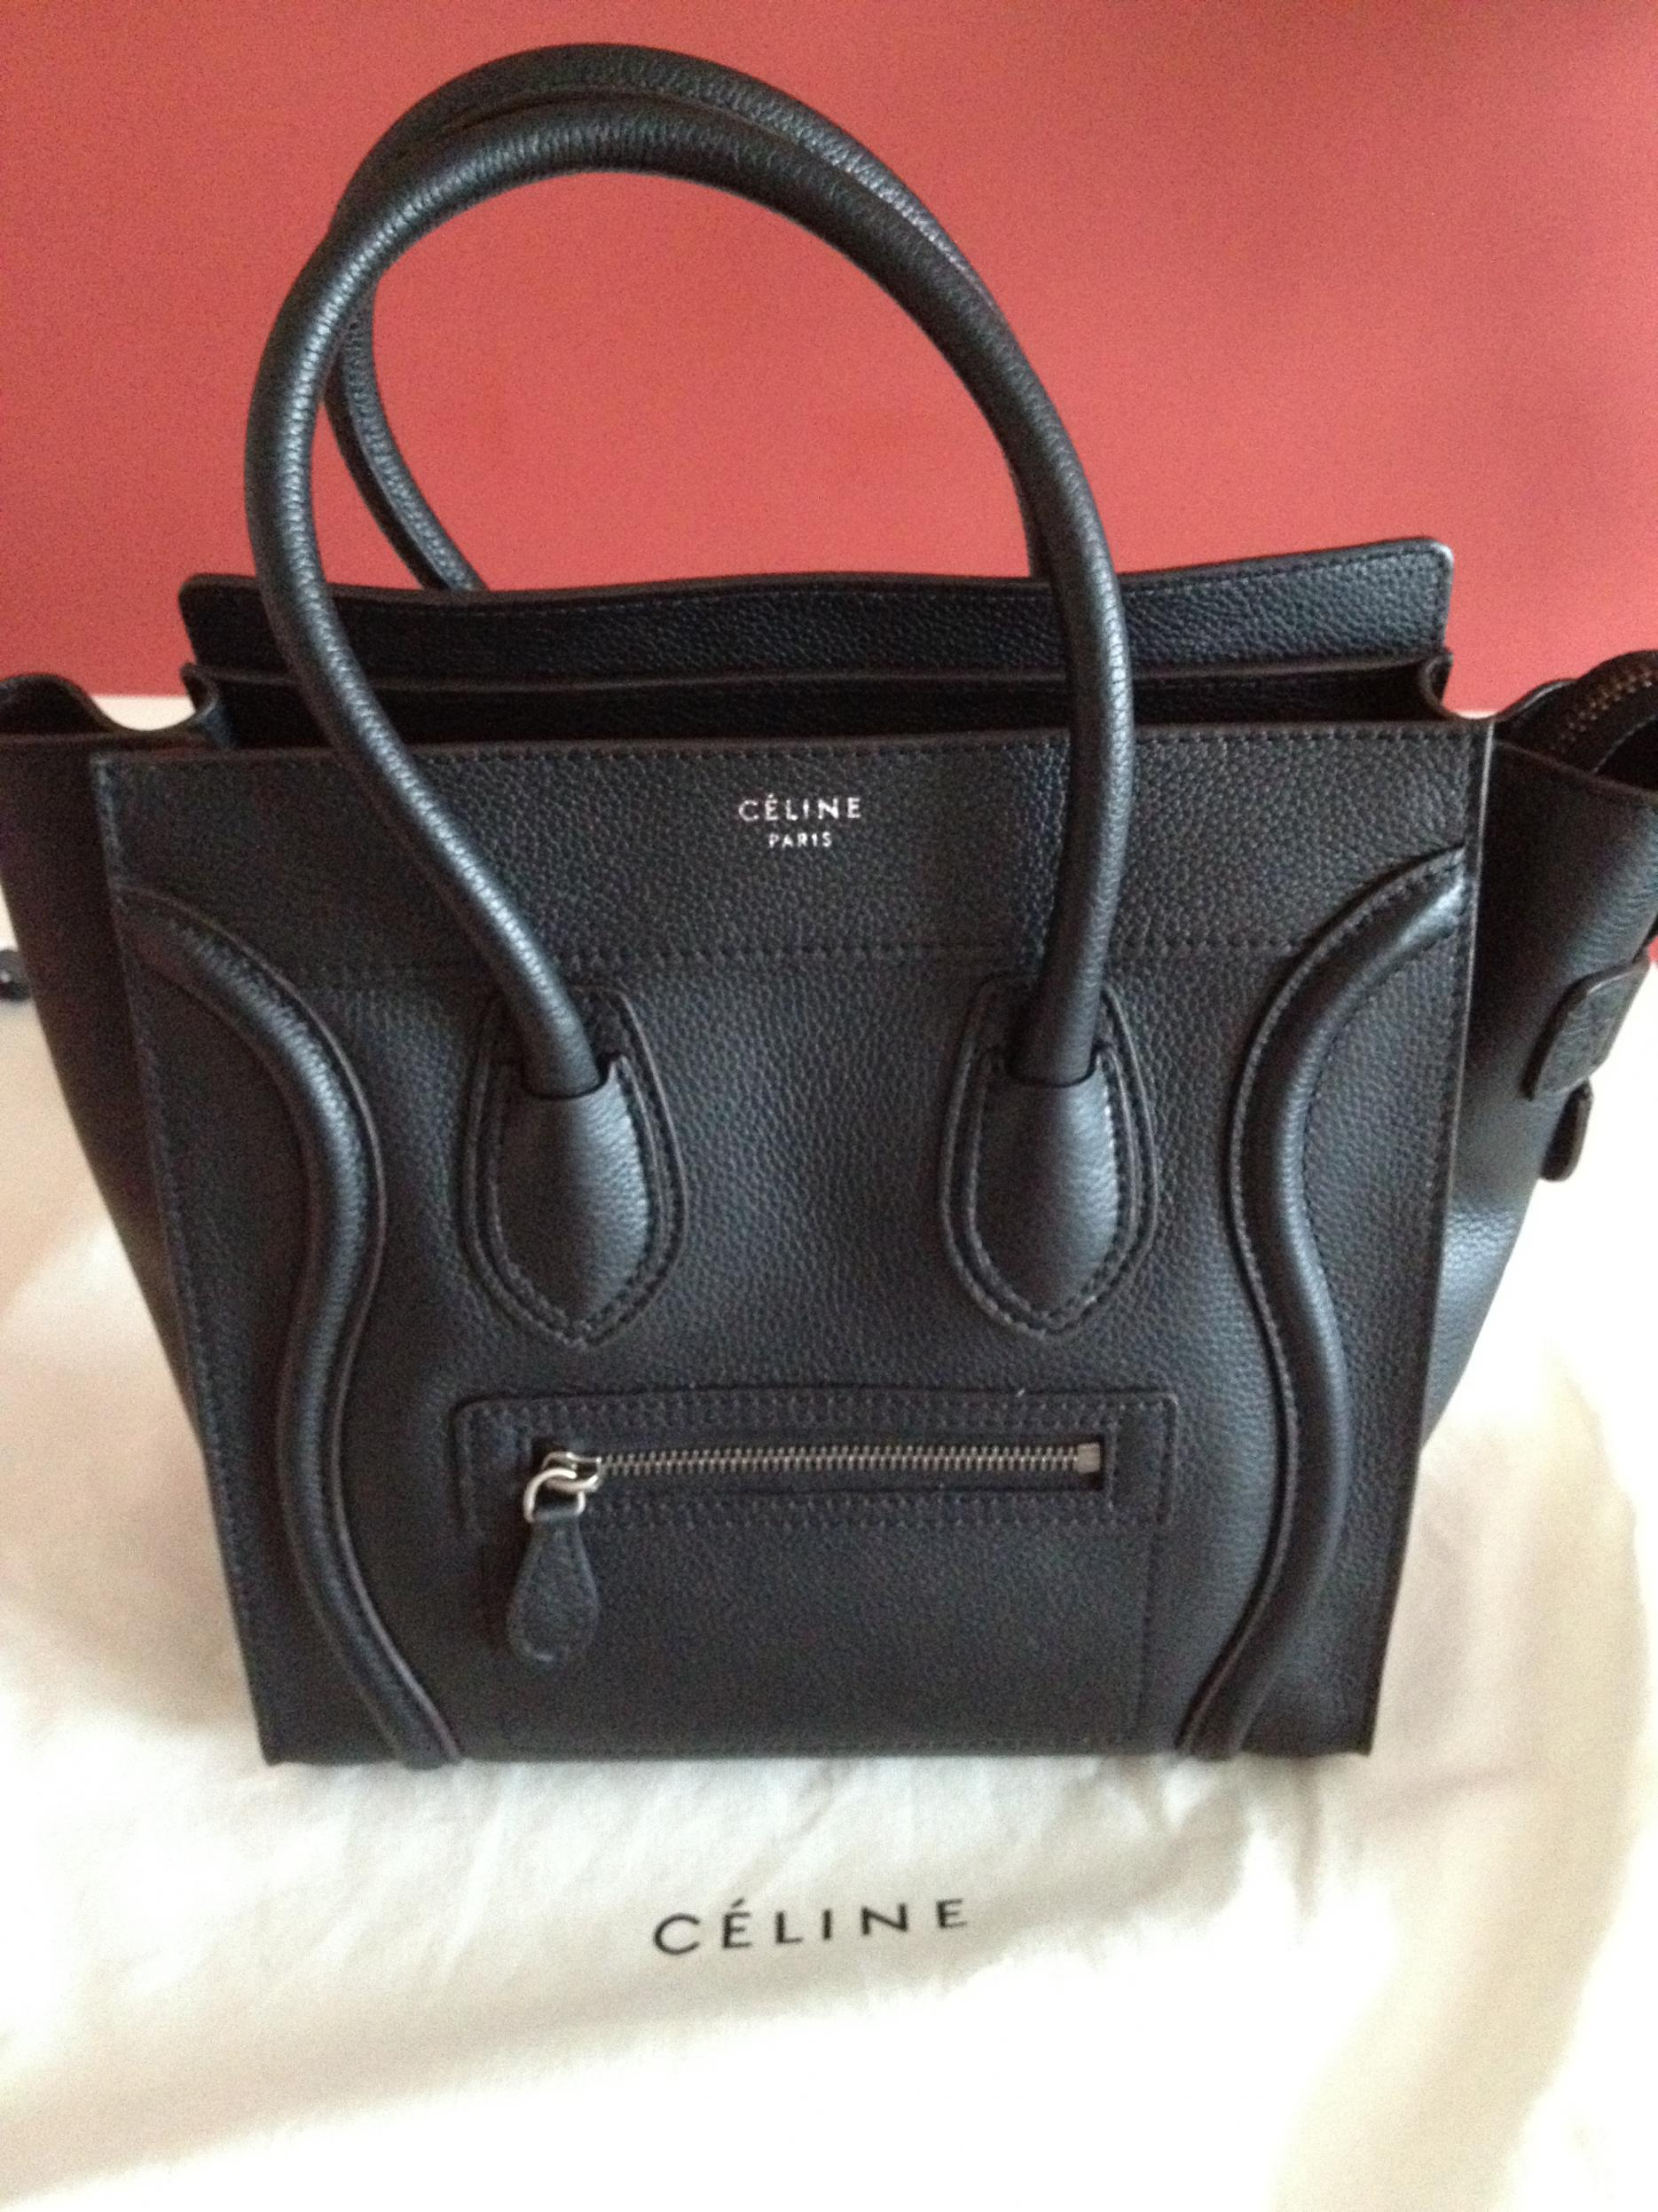 celine crossbody bag - Celine Micro Luggage bag \u2013 COSMOFILE